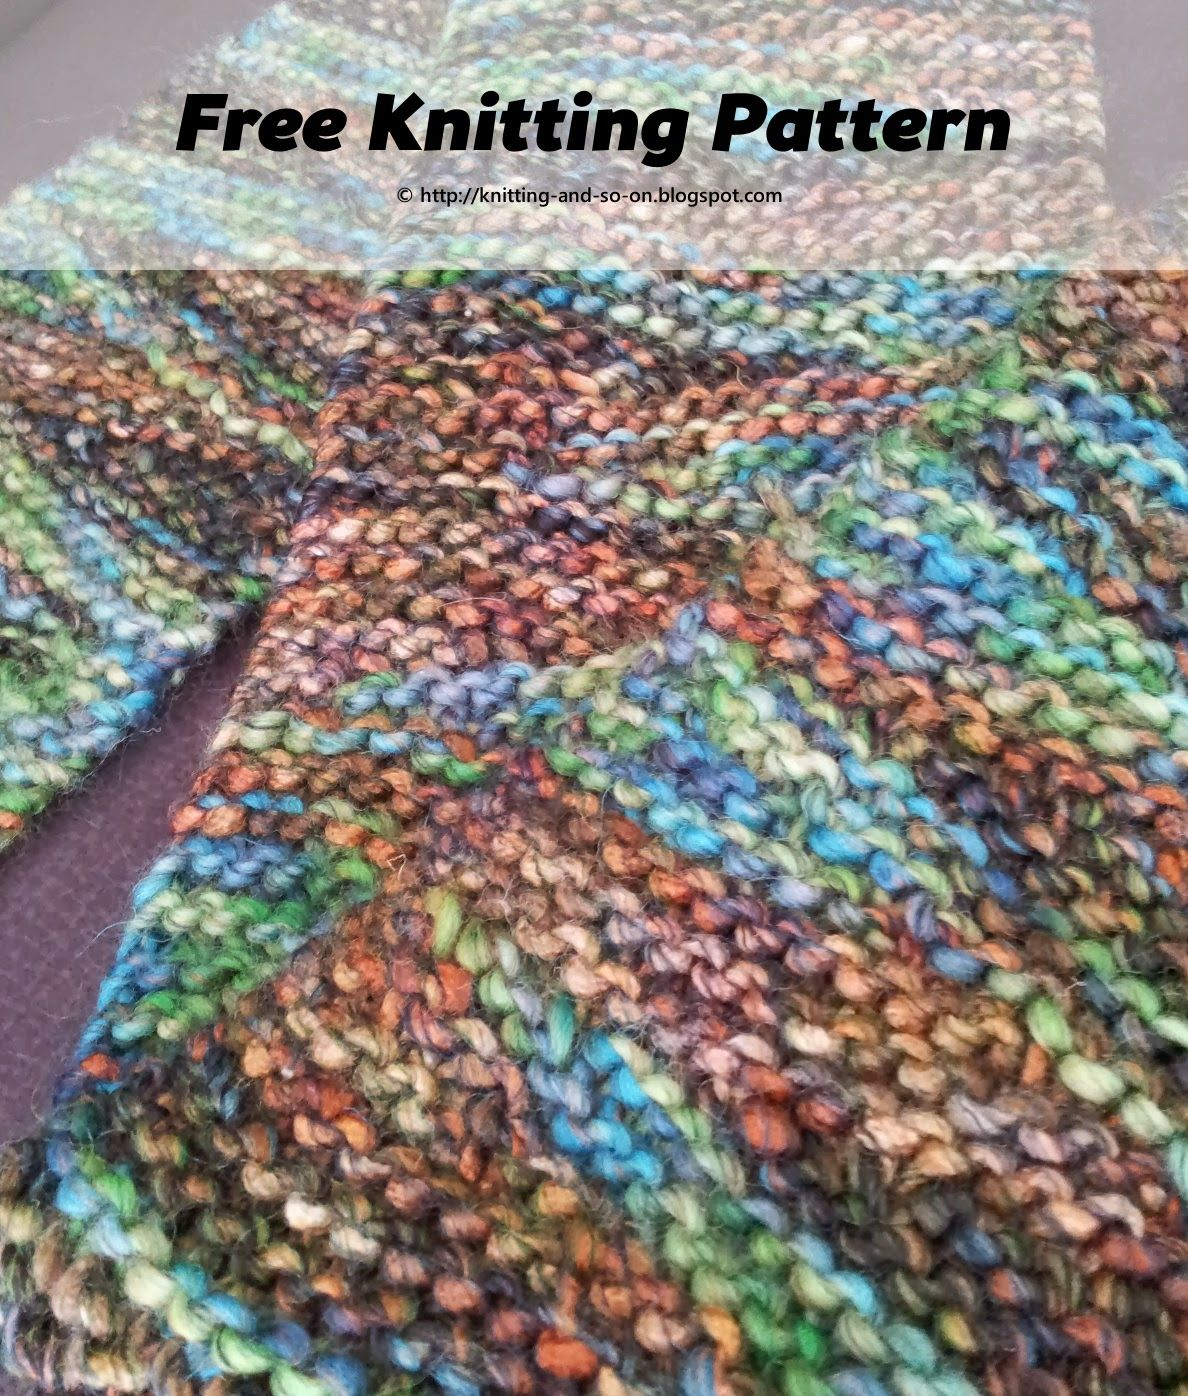 Free Knitting Pattern: Yet Another Short Row Scarf #craft | Knitting ...